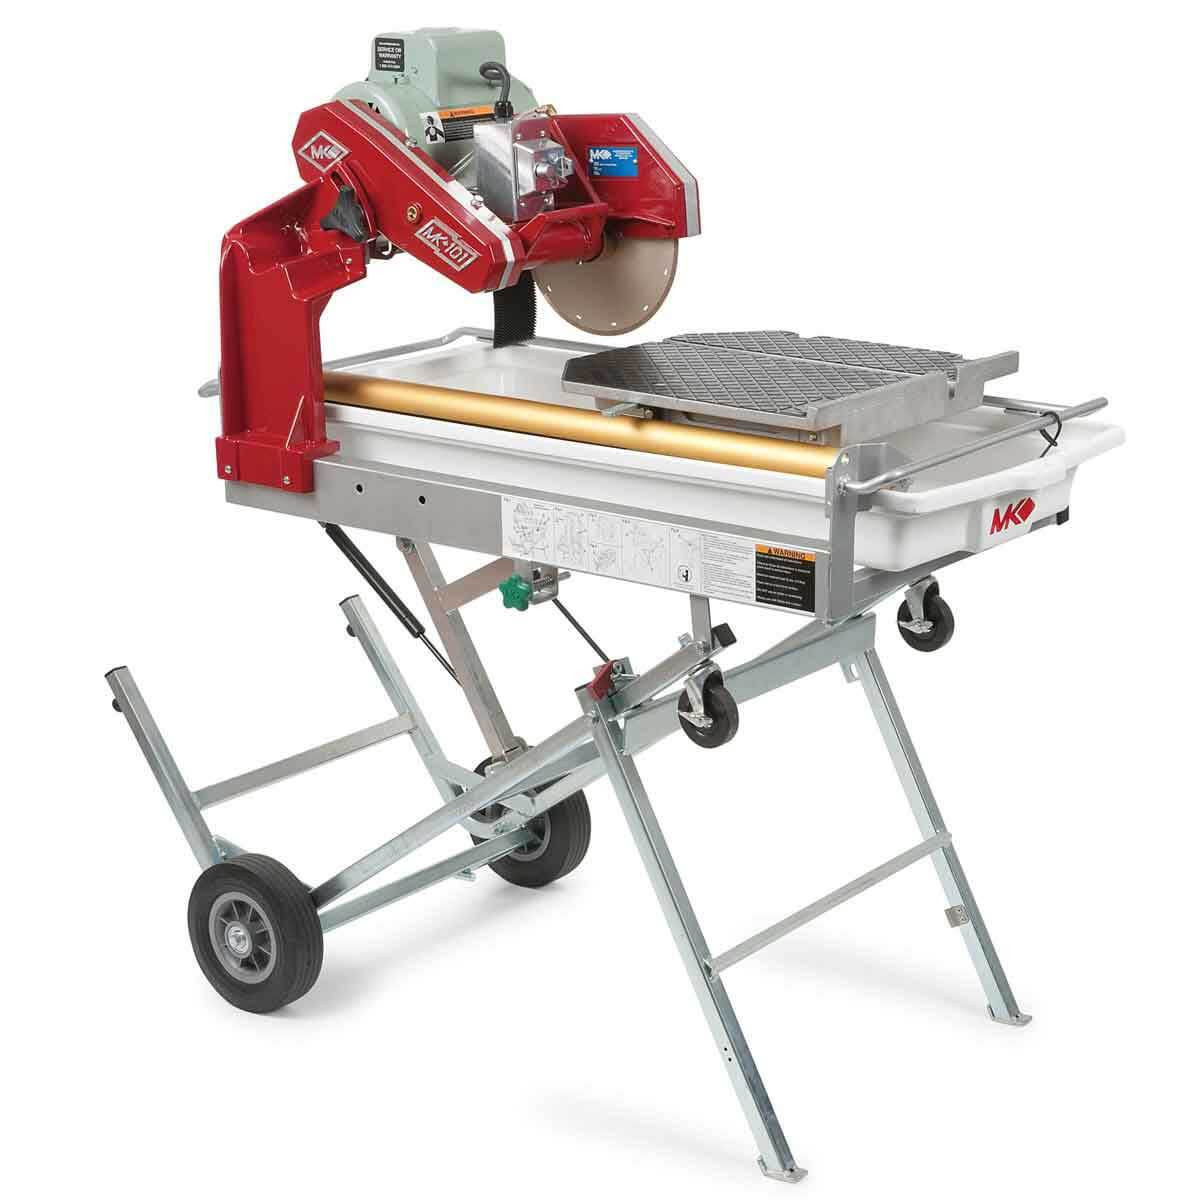 MK-101 Pro24 JCS Tile Saw with Stand